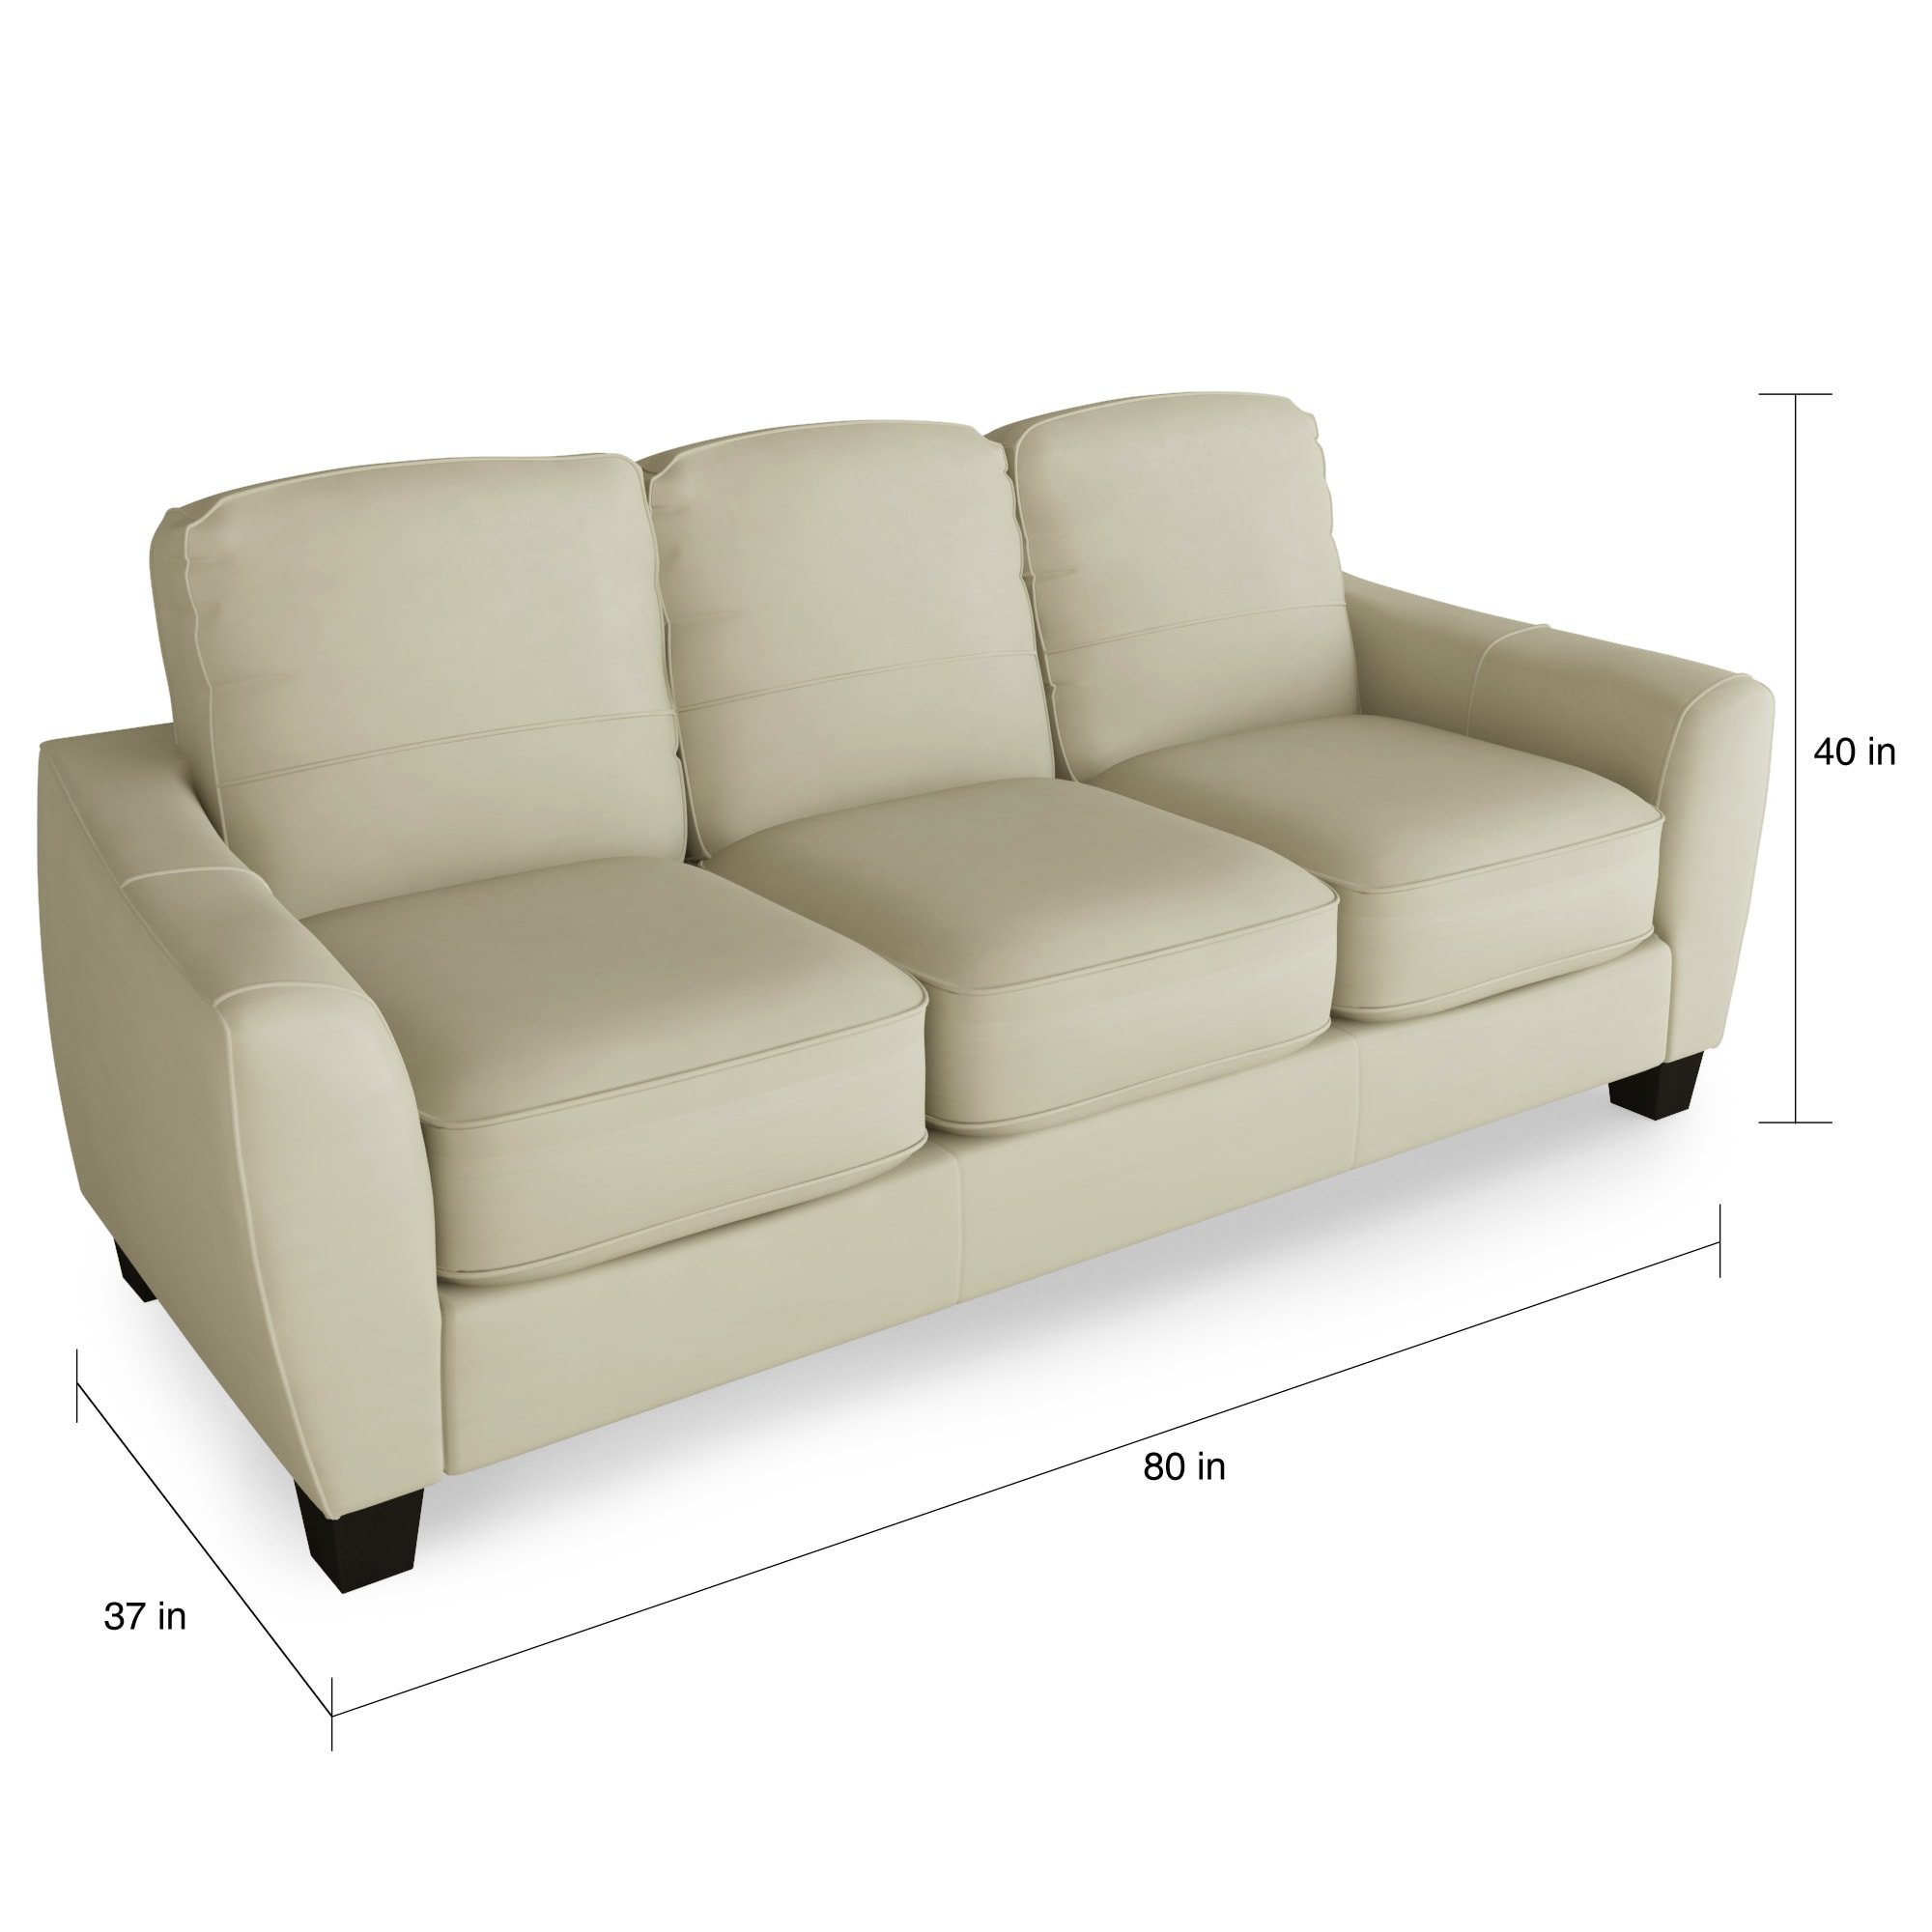 Sawyer Transitional Stationary Sofa Free Shipping Today  ~ What Is A Transitional Sofa